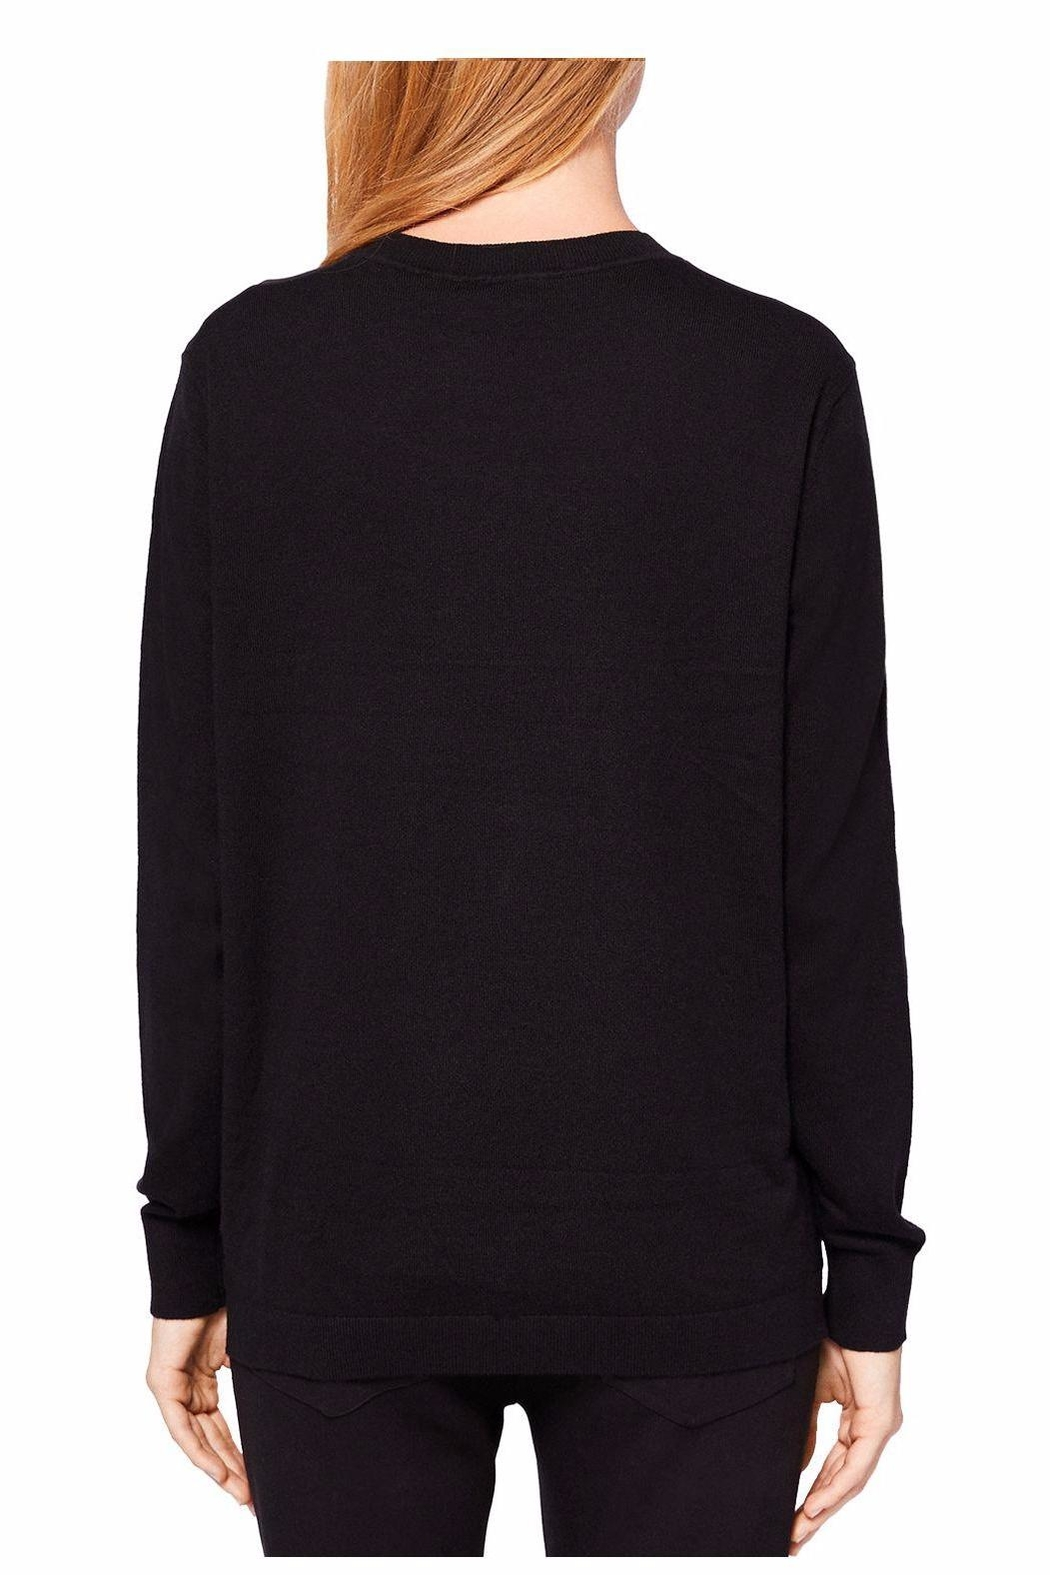 Ted Baker London Feodora Sweater - Front Full Image